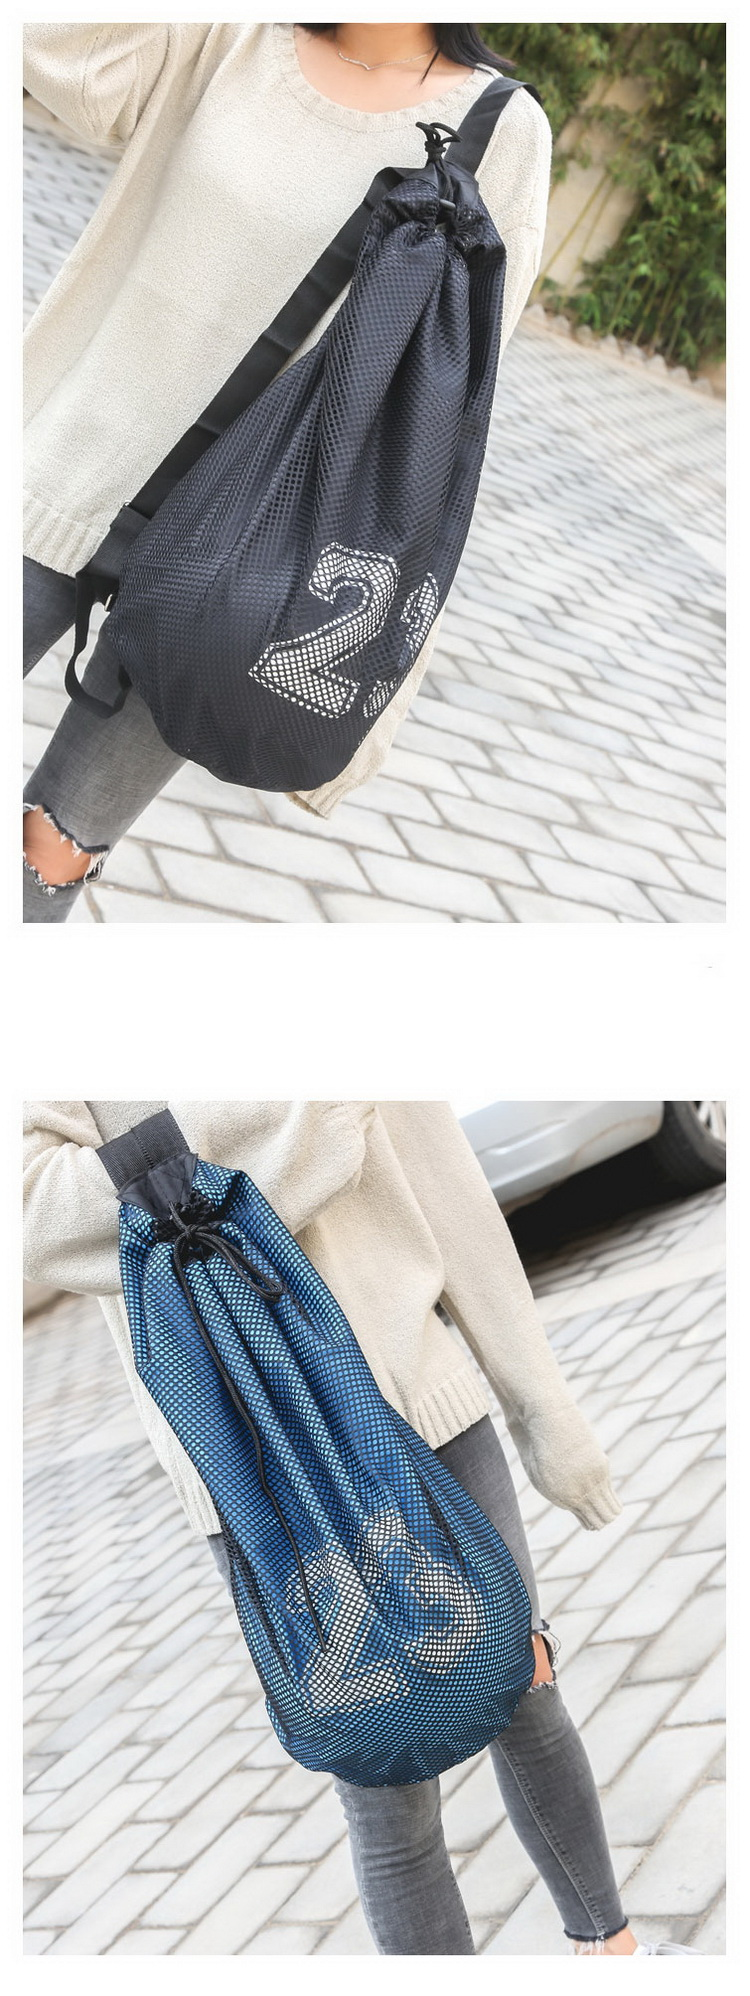 Football volleyball soccer storage mesh bag fitness bucket bag outdoor Basketball sports bags for men